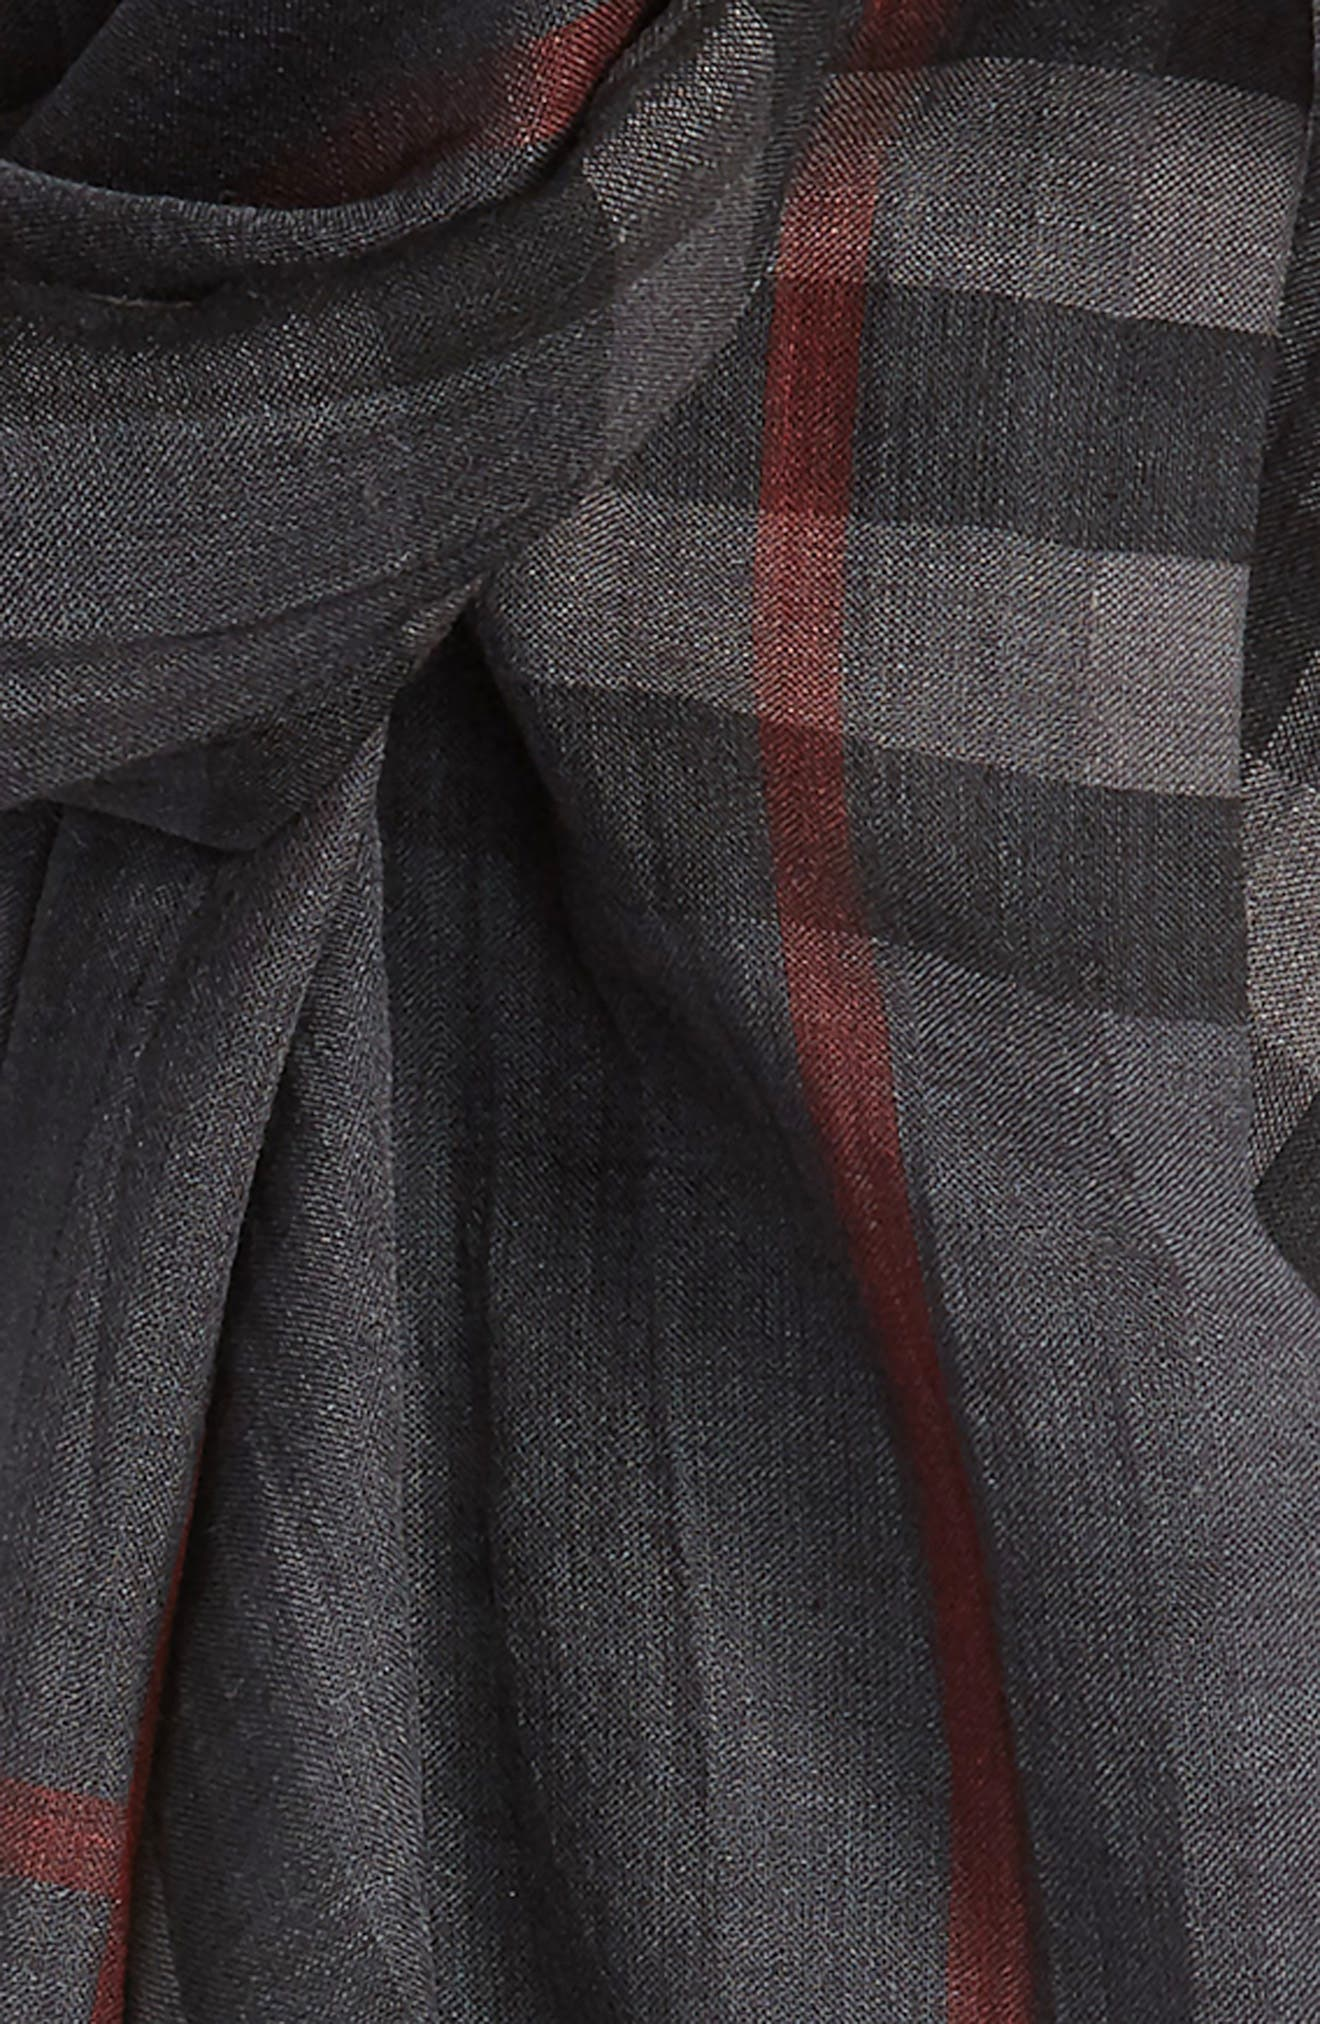 Giant Check Print Wool & Silk Scarf,                             Alternate thumbnail 146, color,